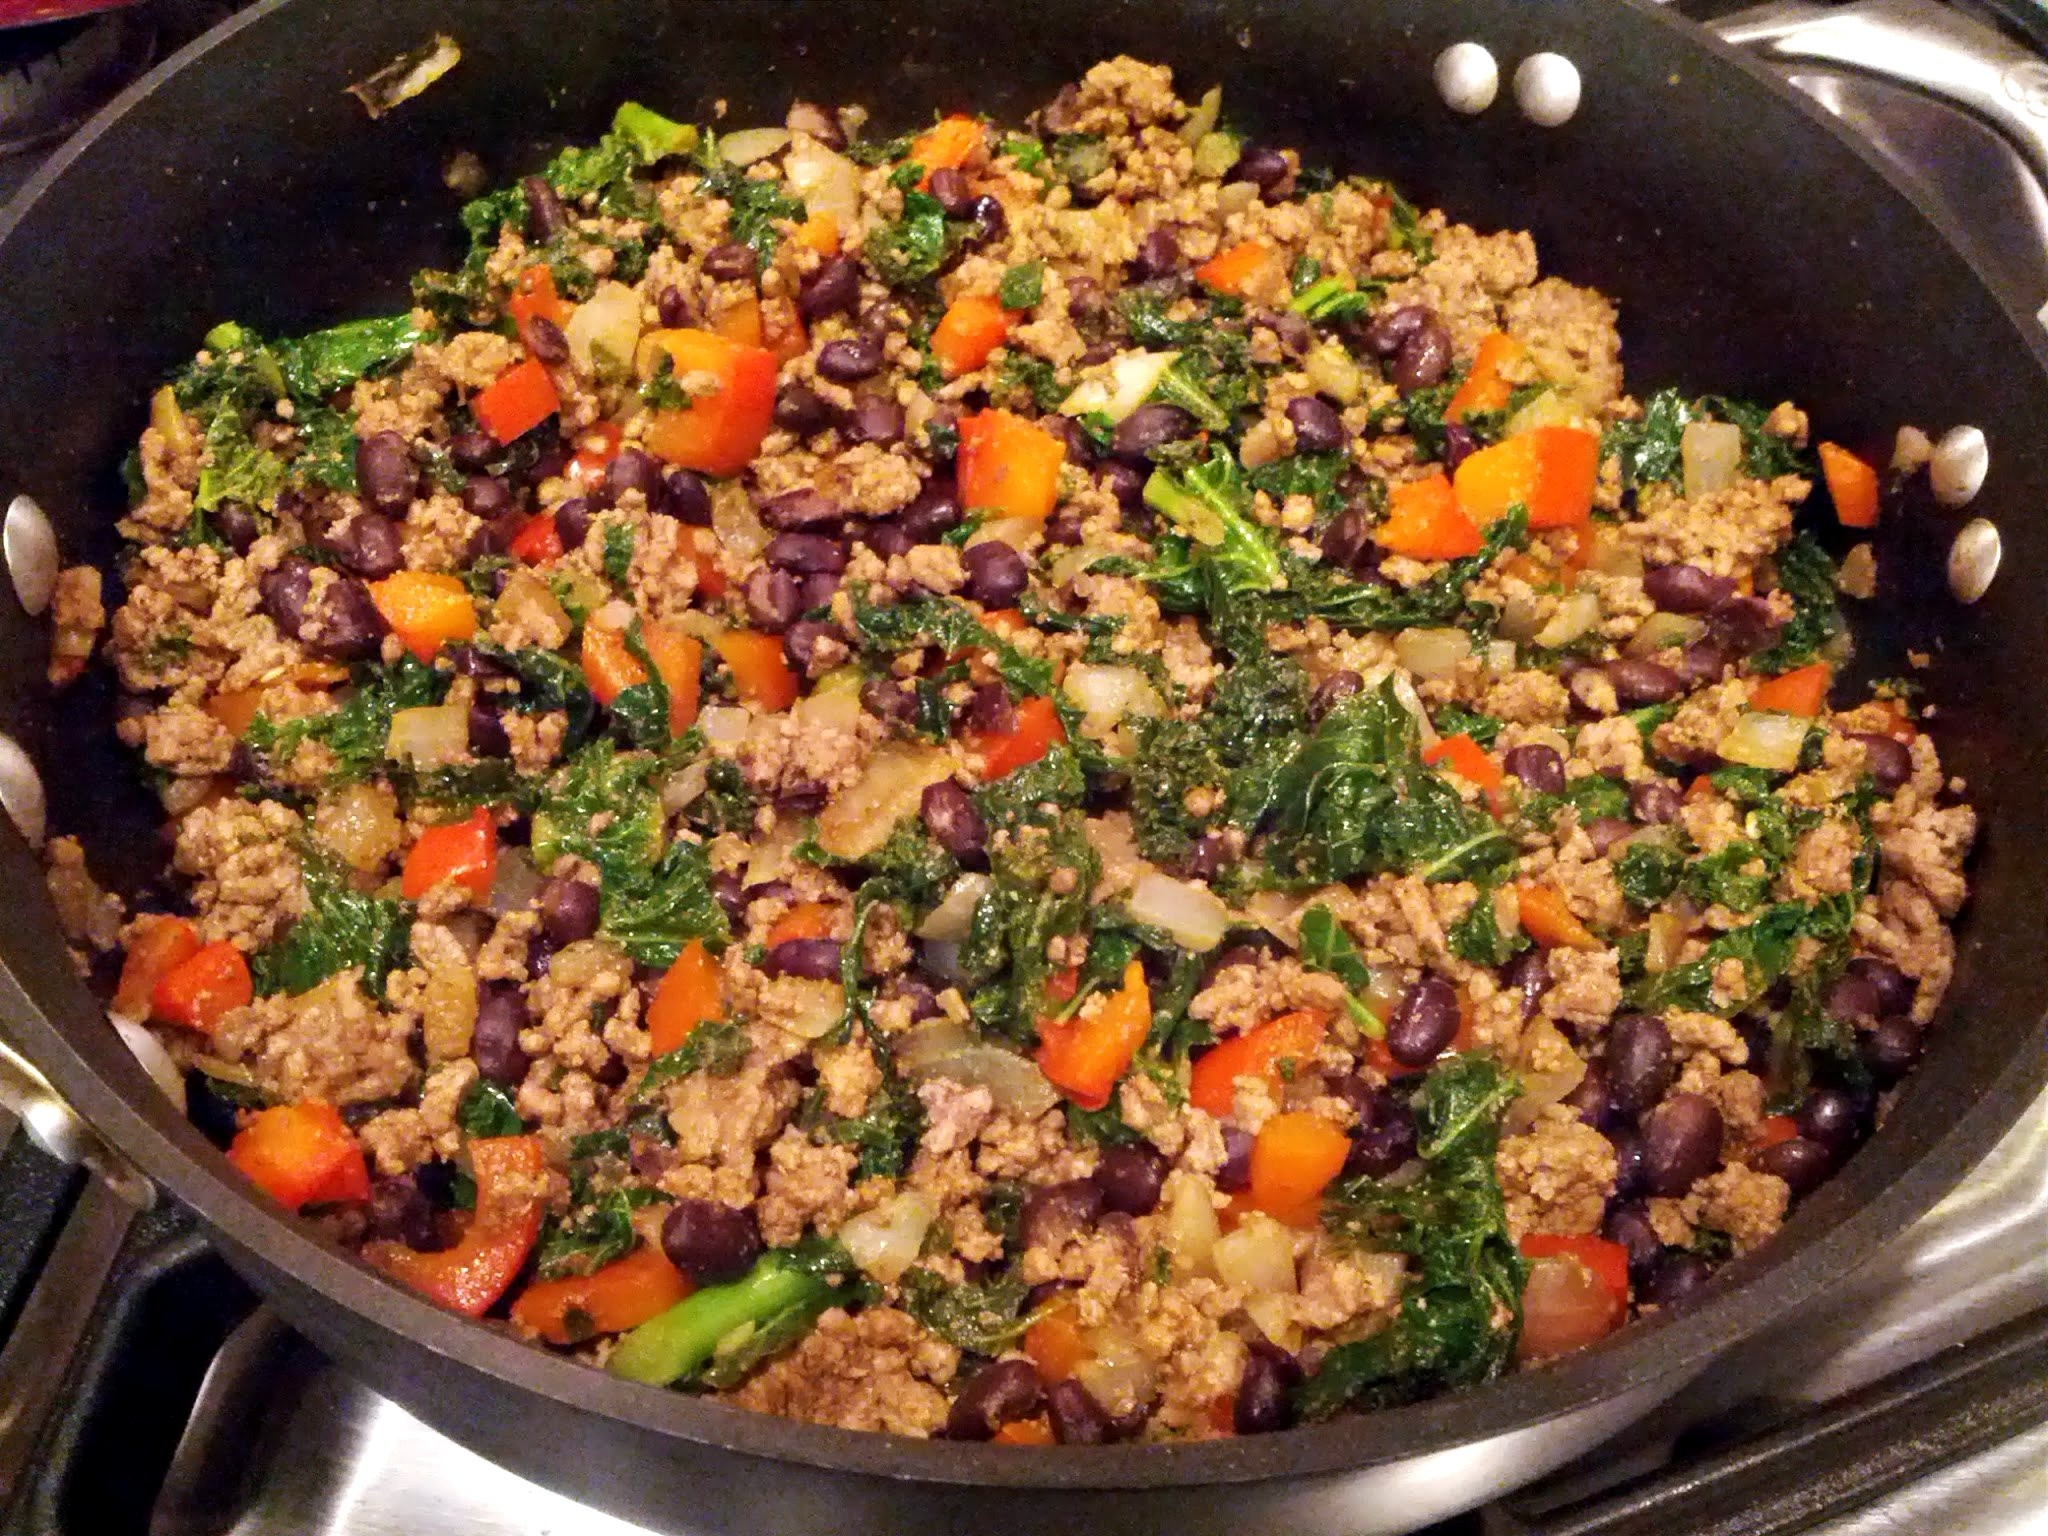 Ground Turkey Meat Recipies  Kale and Ground Beef Turkey Taco Filling